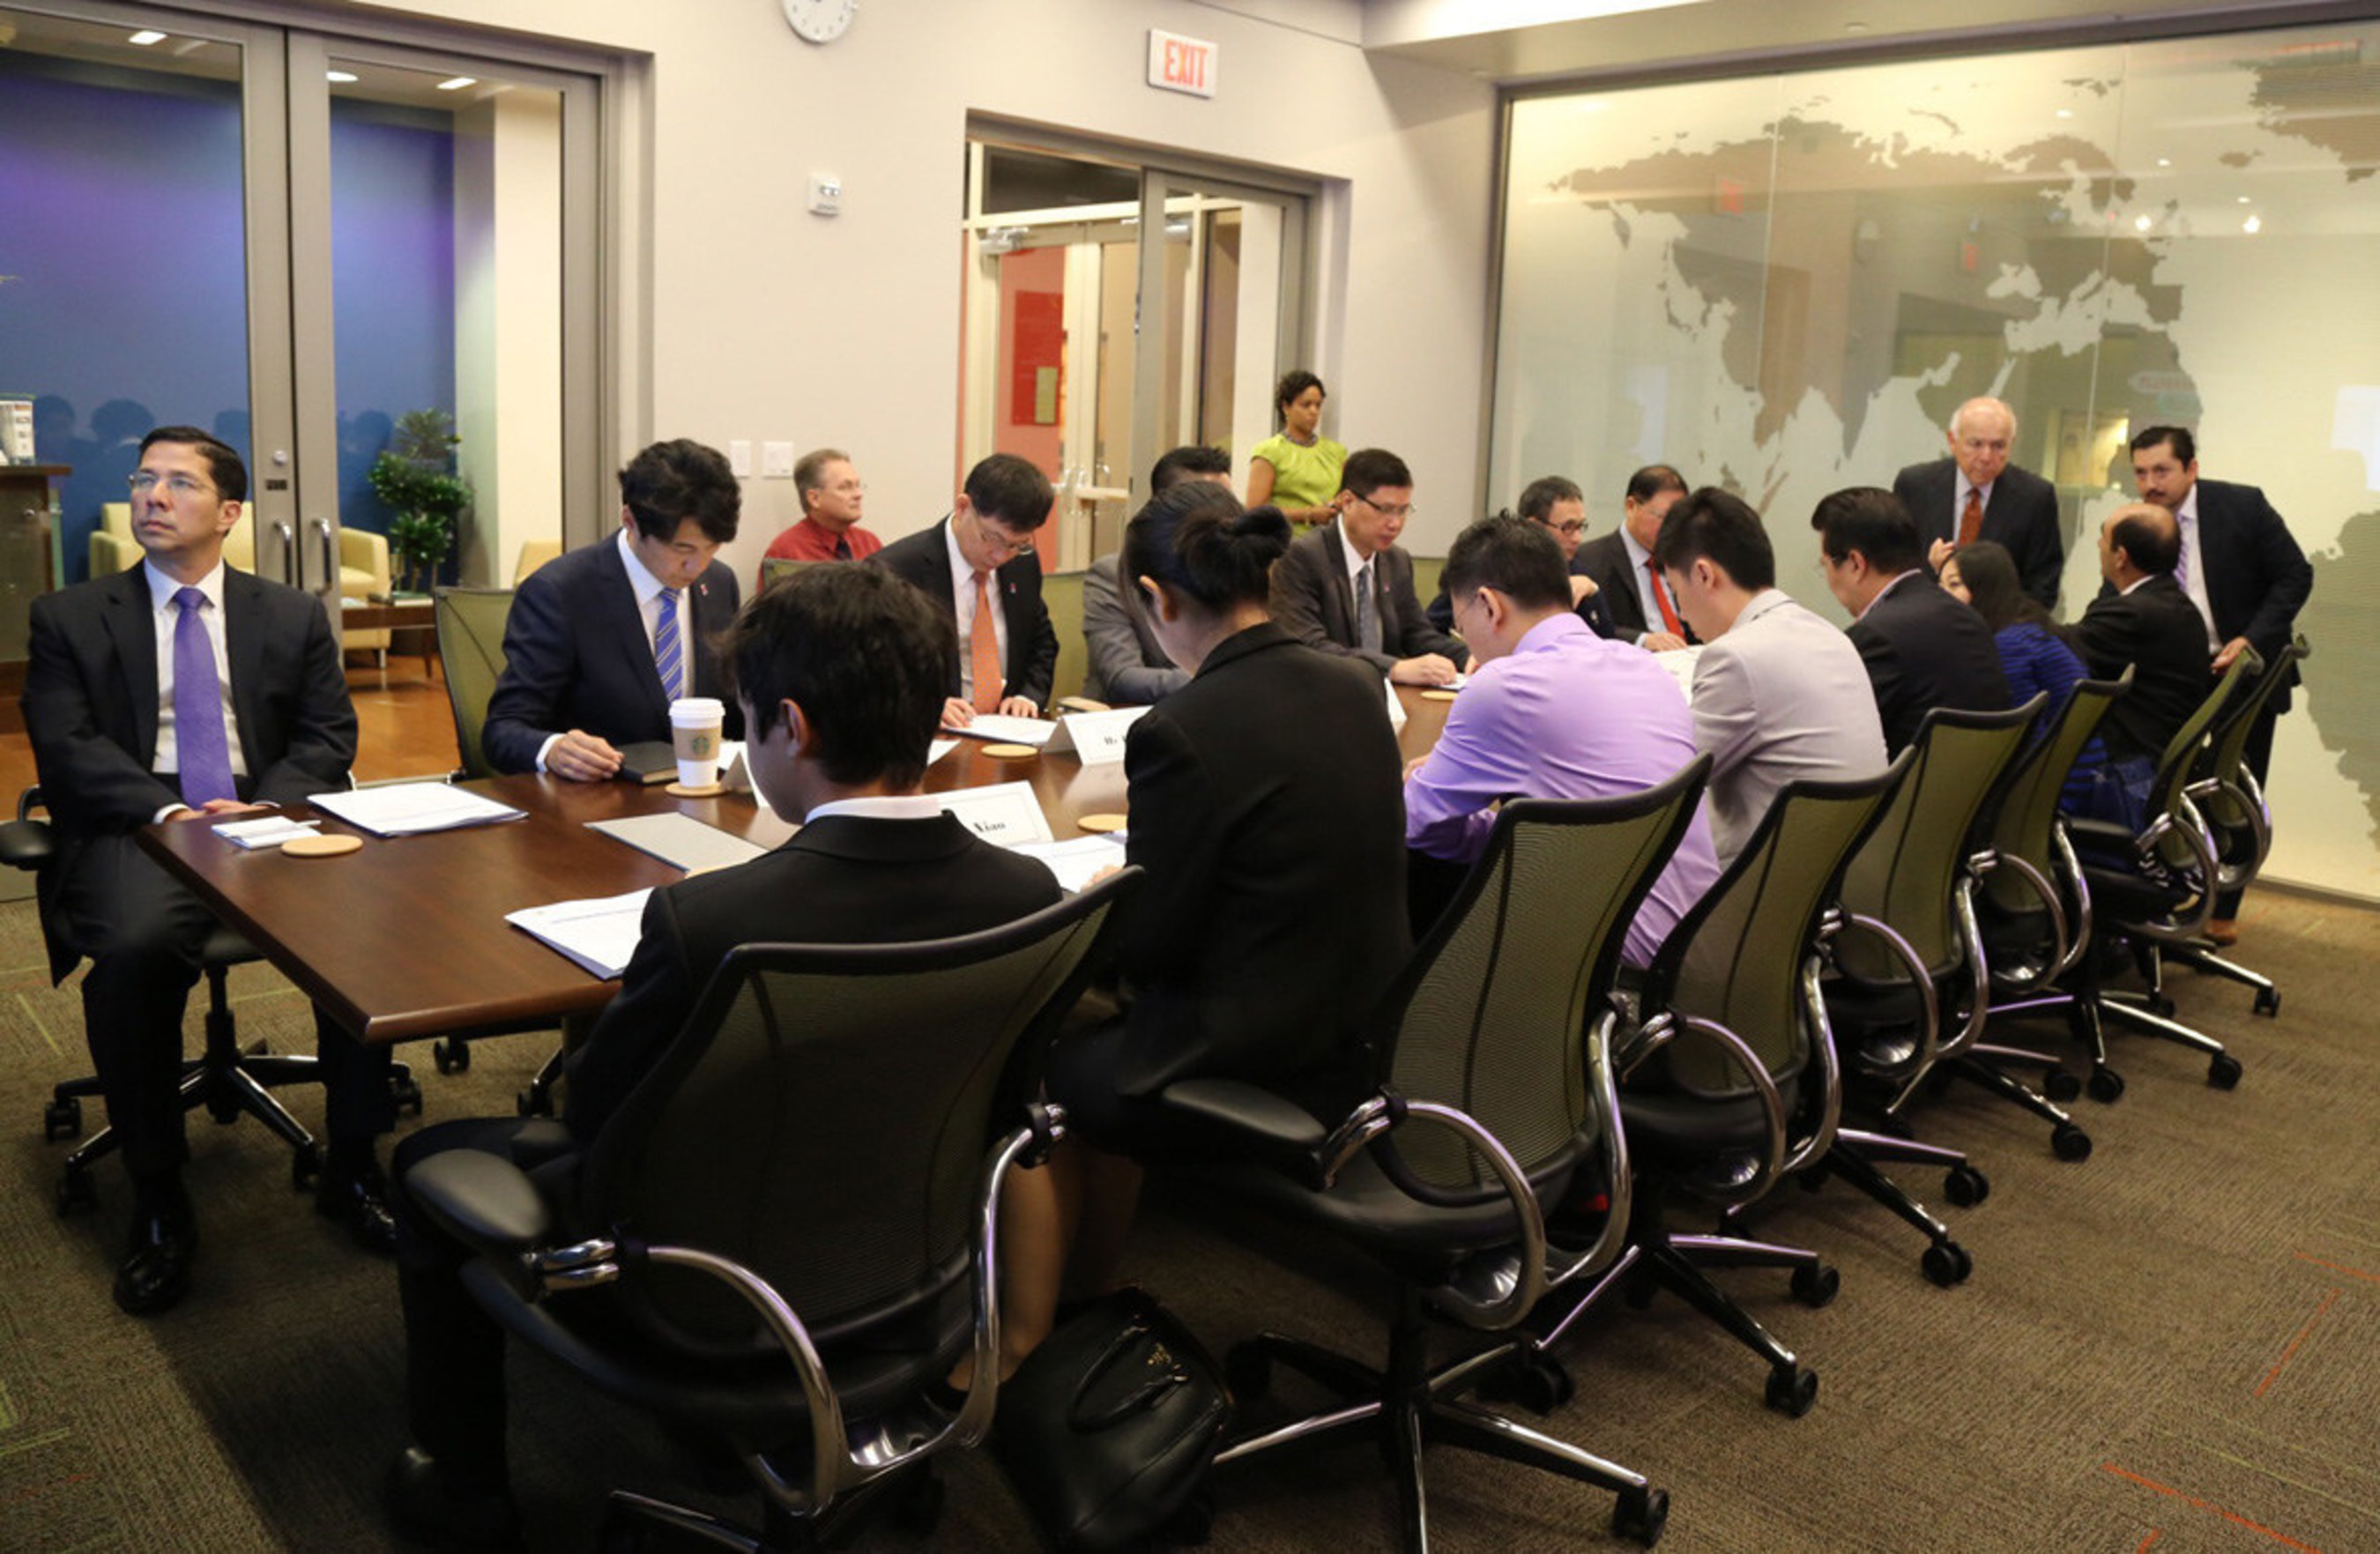 Members of the delegation listen to presentations by U.S. companies at the Free Trade Alliance San Antonio ...